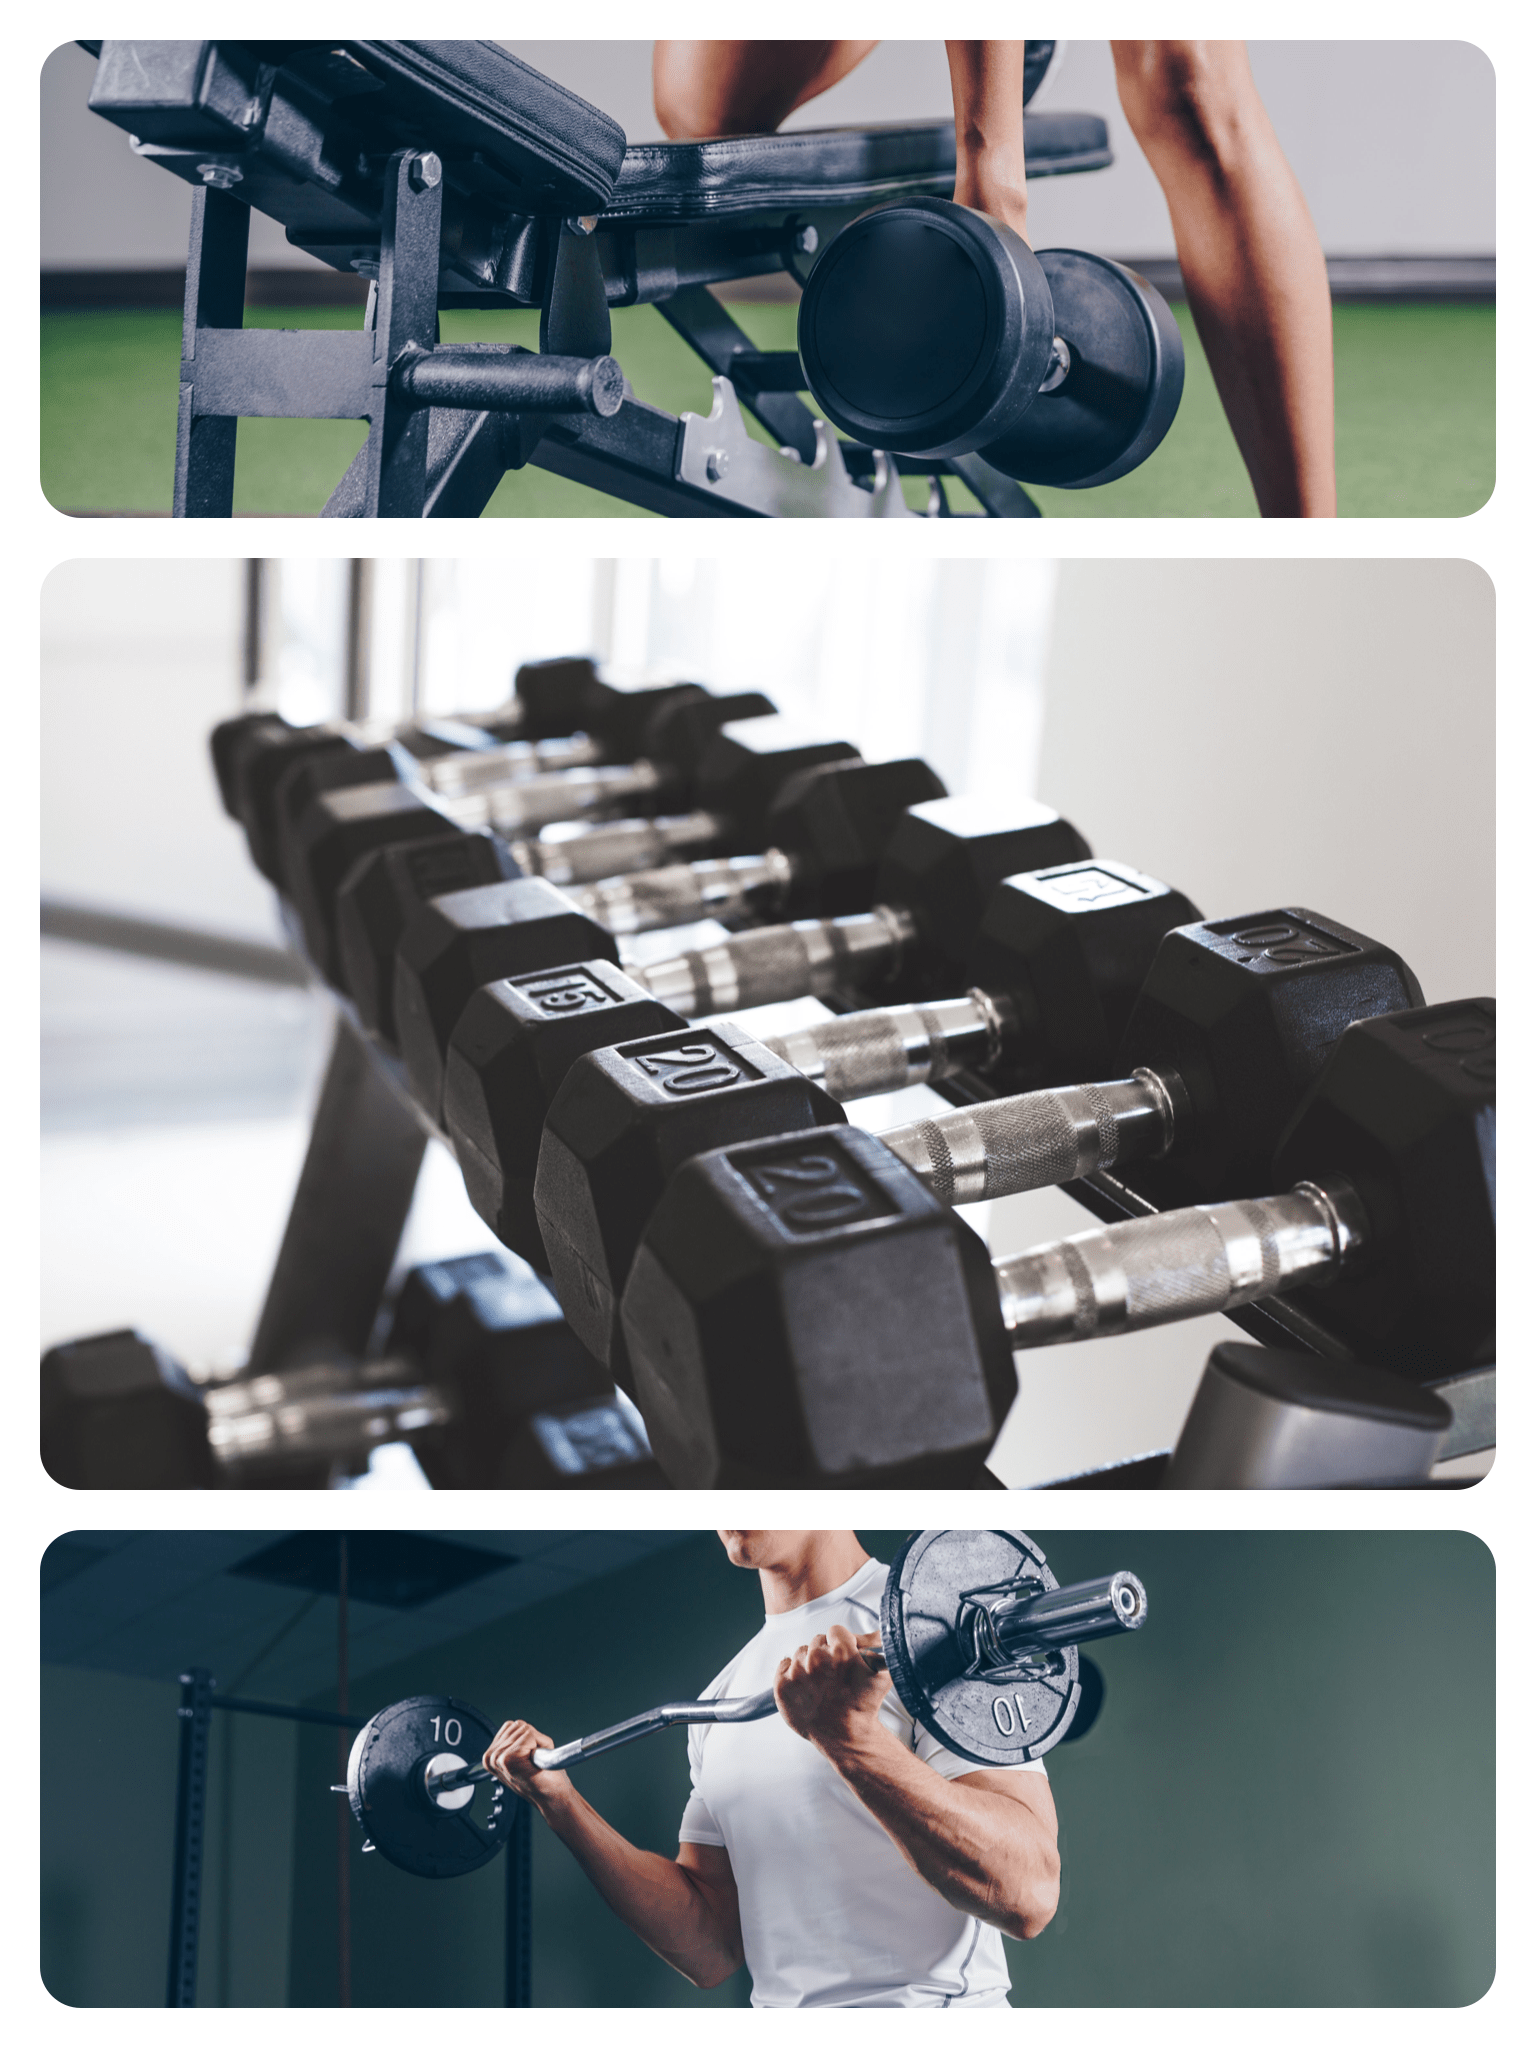 pictures of weights and resistance training